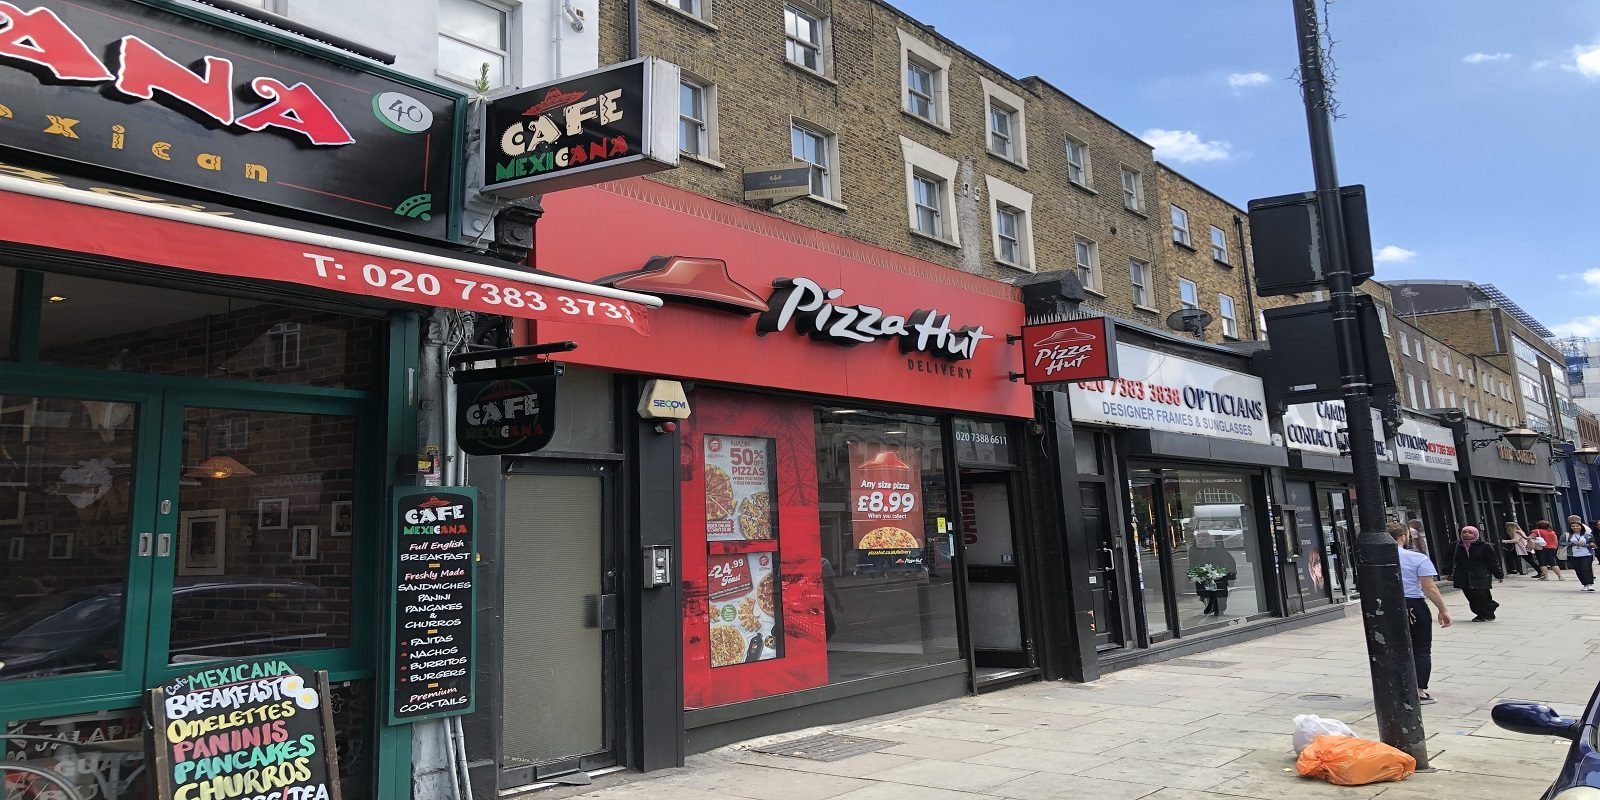 A5 TAKEAWAY PREMISES TO LET IN CAMDEN